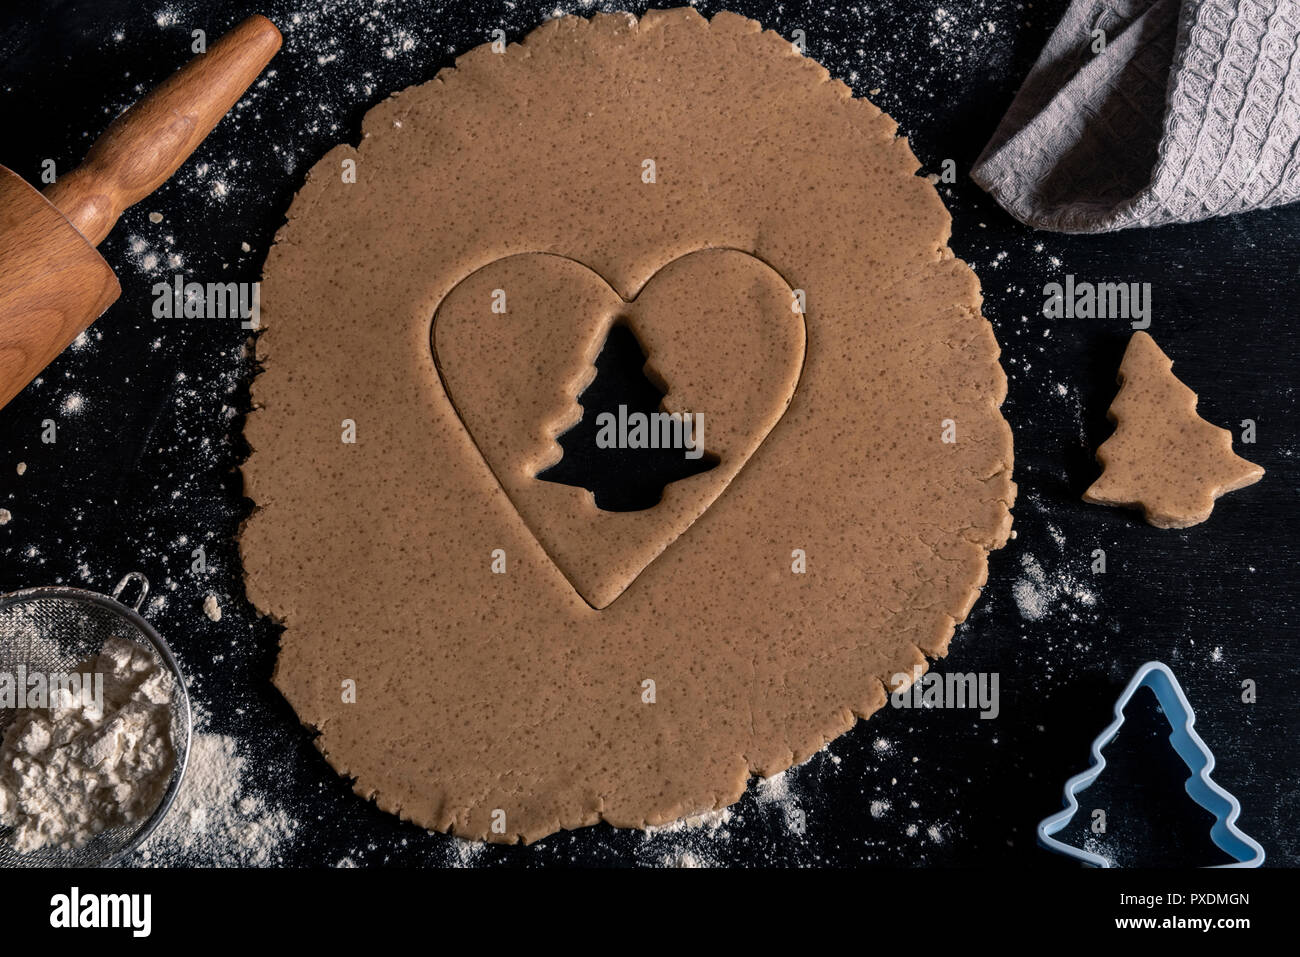 Above view with christmas baking table, gingerbread dough with a heart and tree shape cut from it - Stock Image